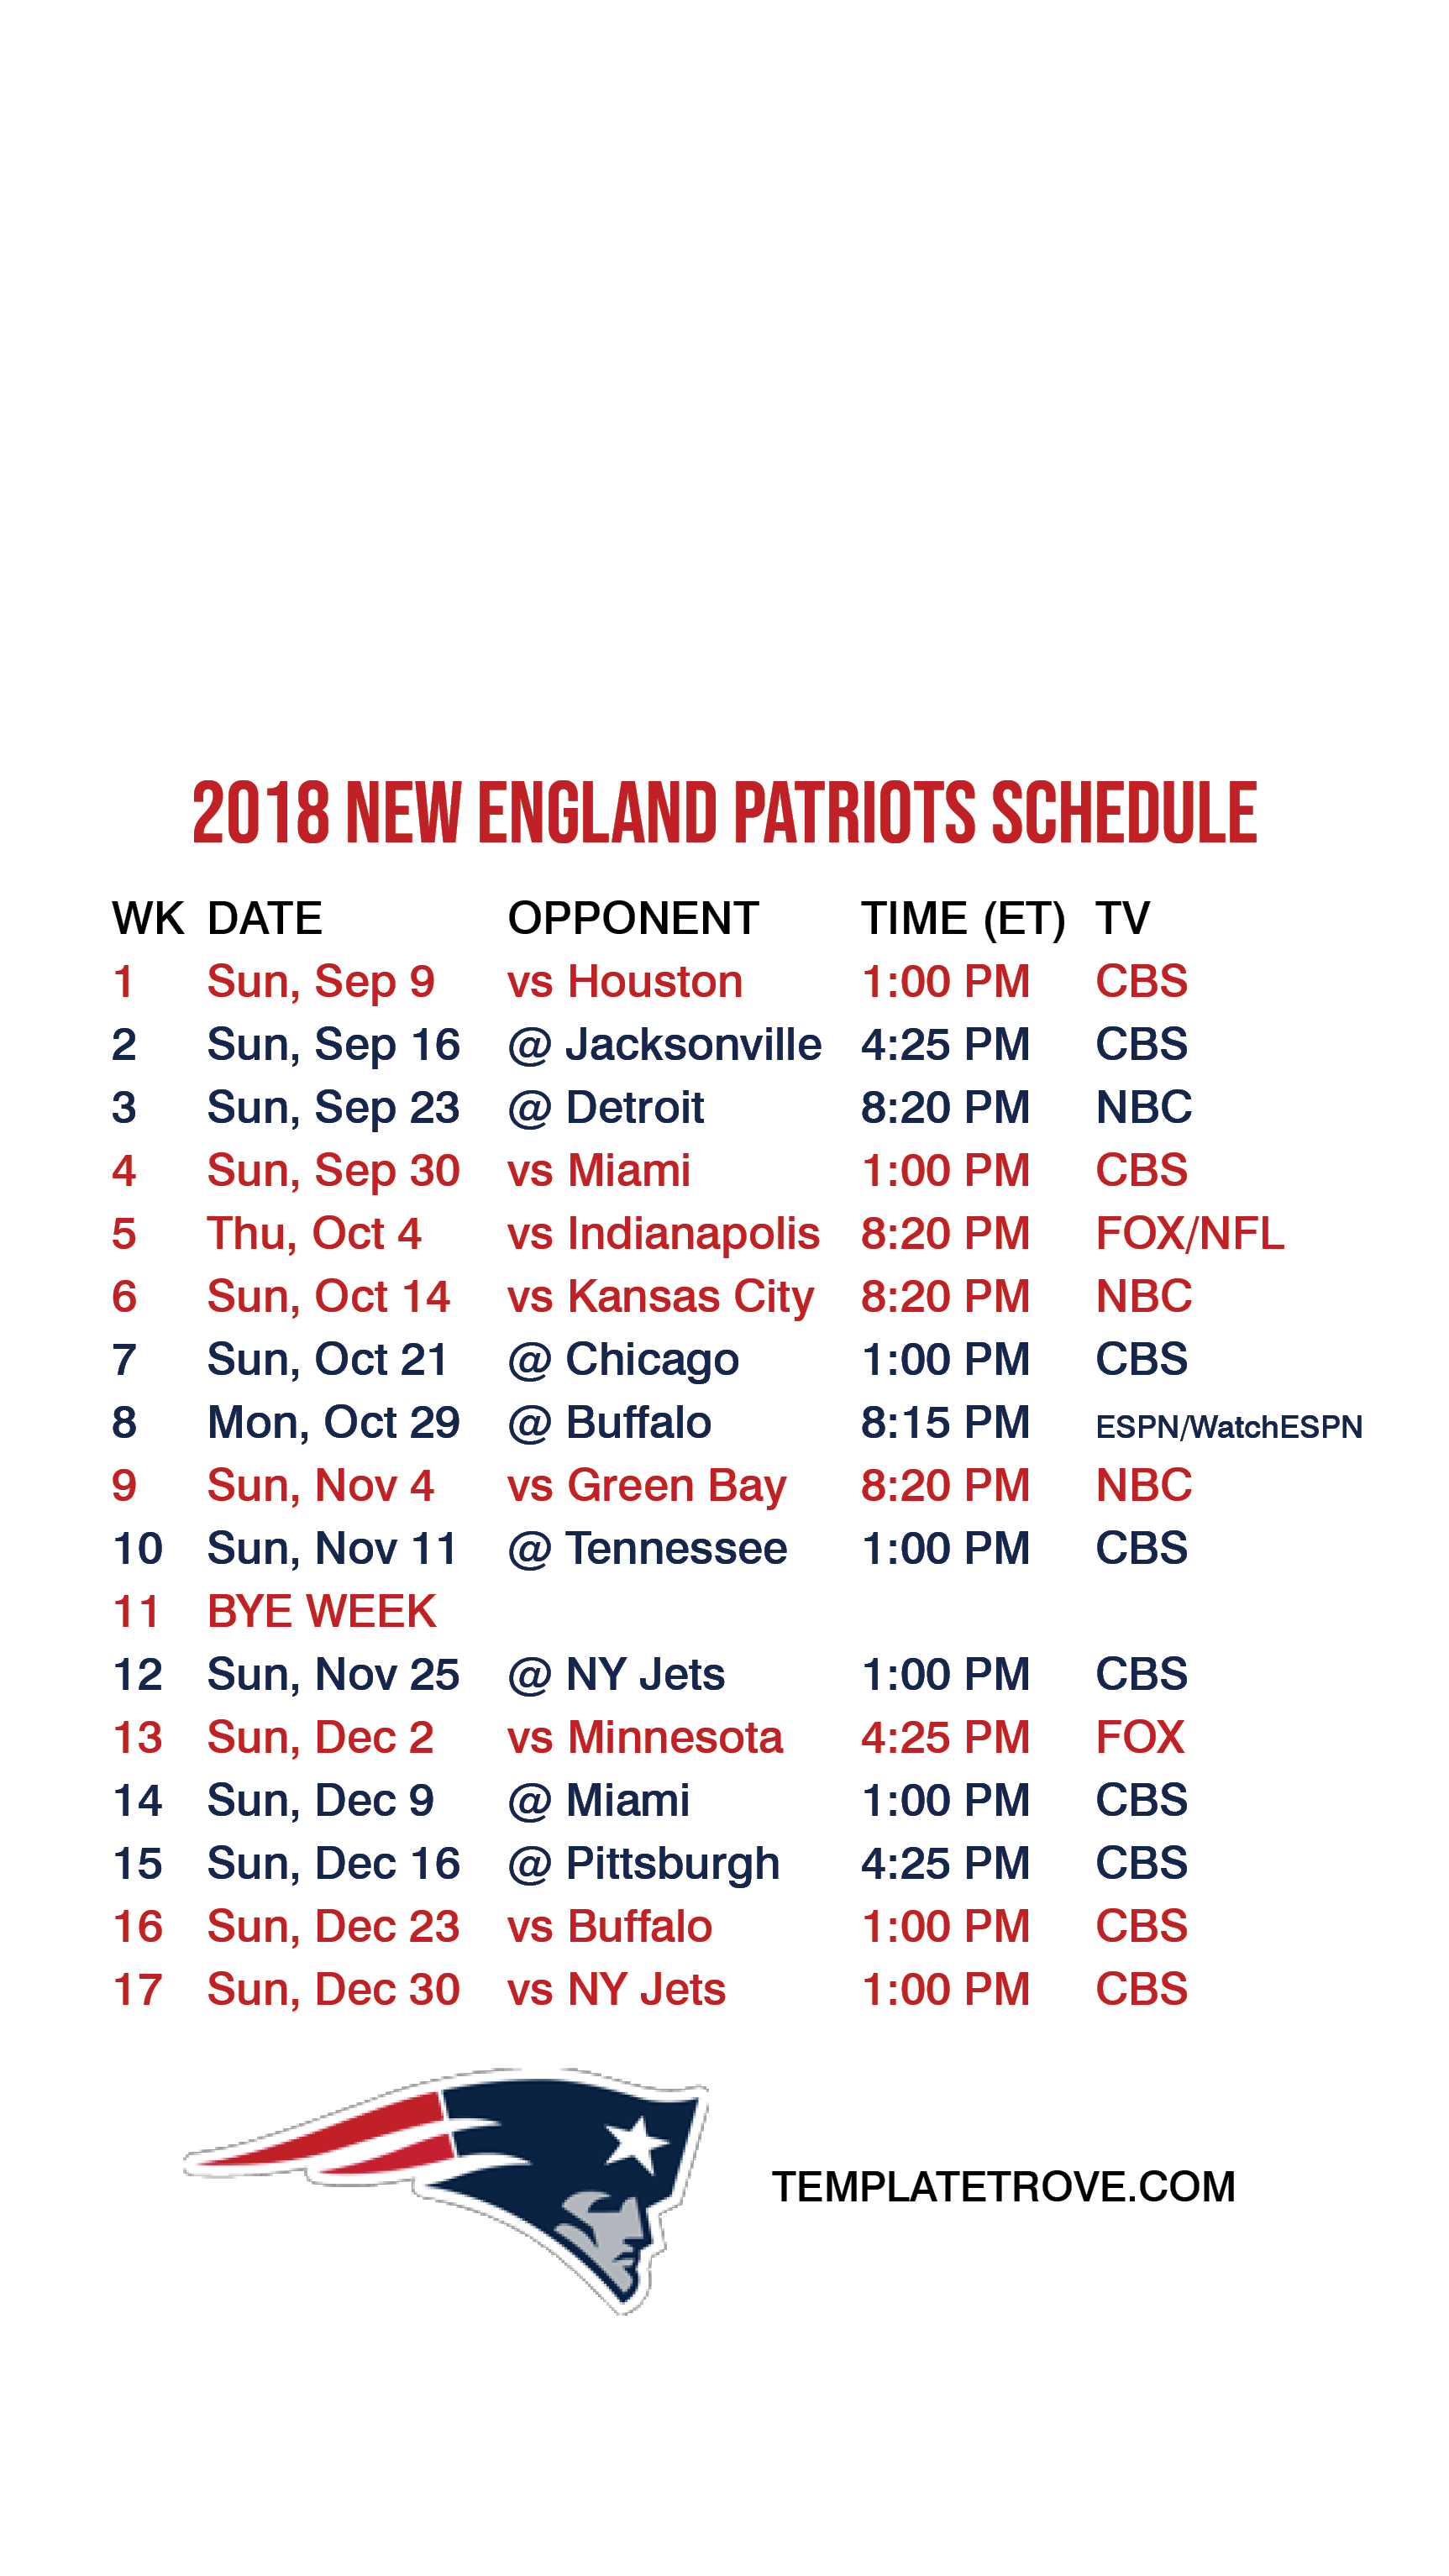 picture regarding New England Patriots Printable Schedule named 2018-2019 Fresh new England Patriots Lock Display screen Routine for